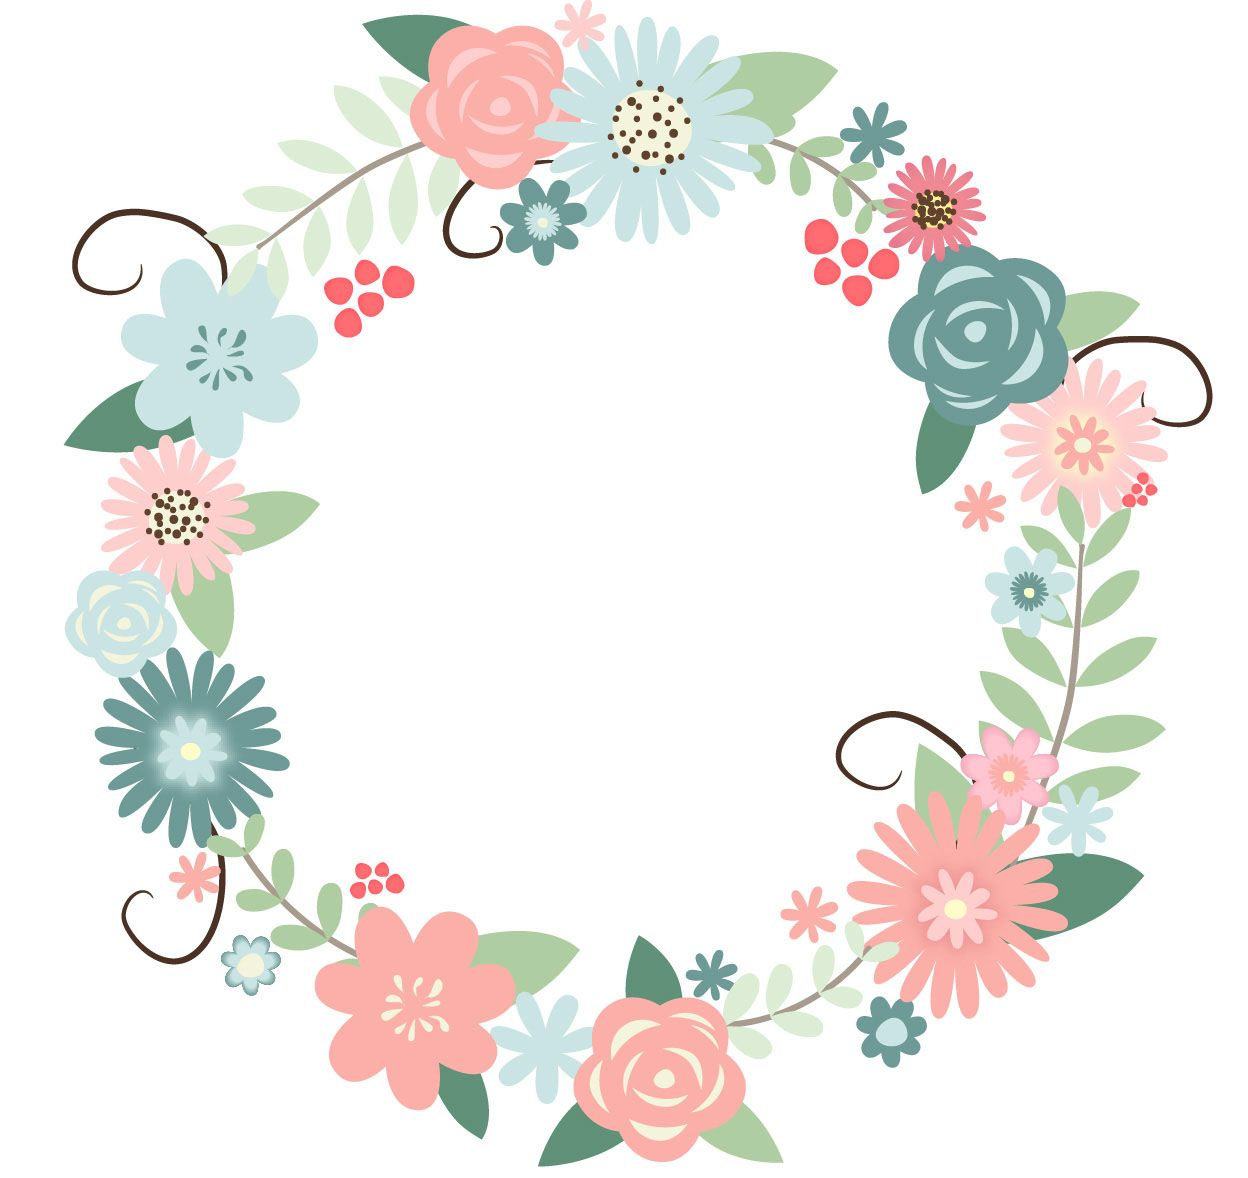 1248x1178 Recolored Floral Wreath. Watercolor Floral Wreath